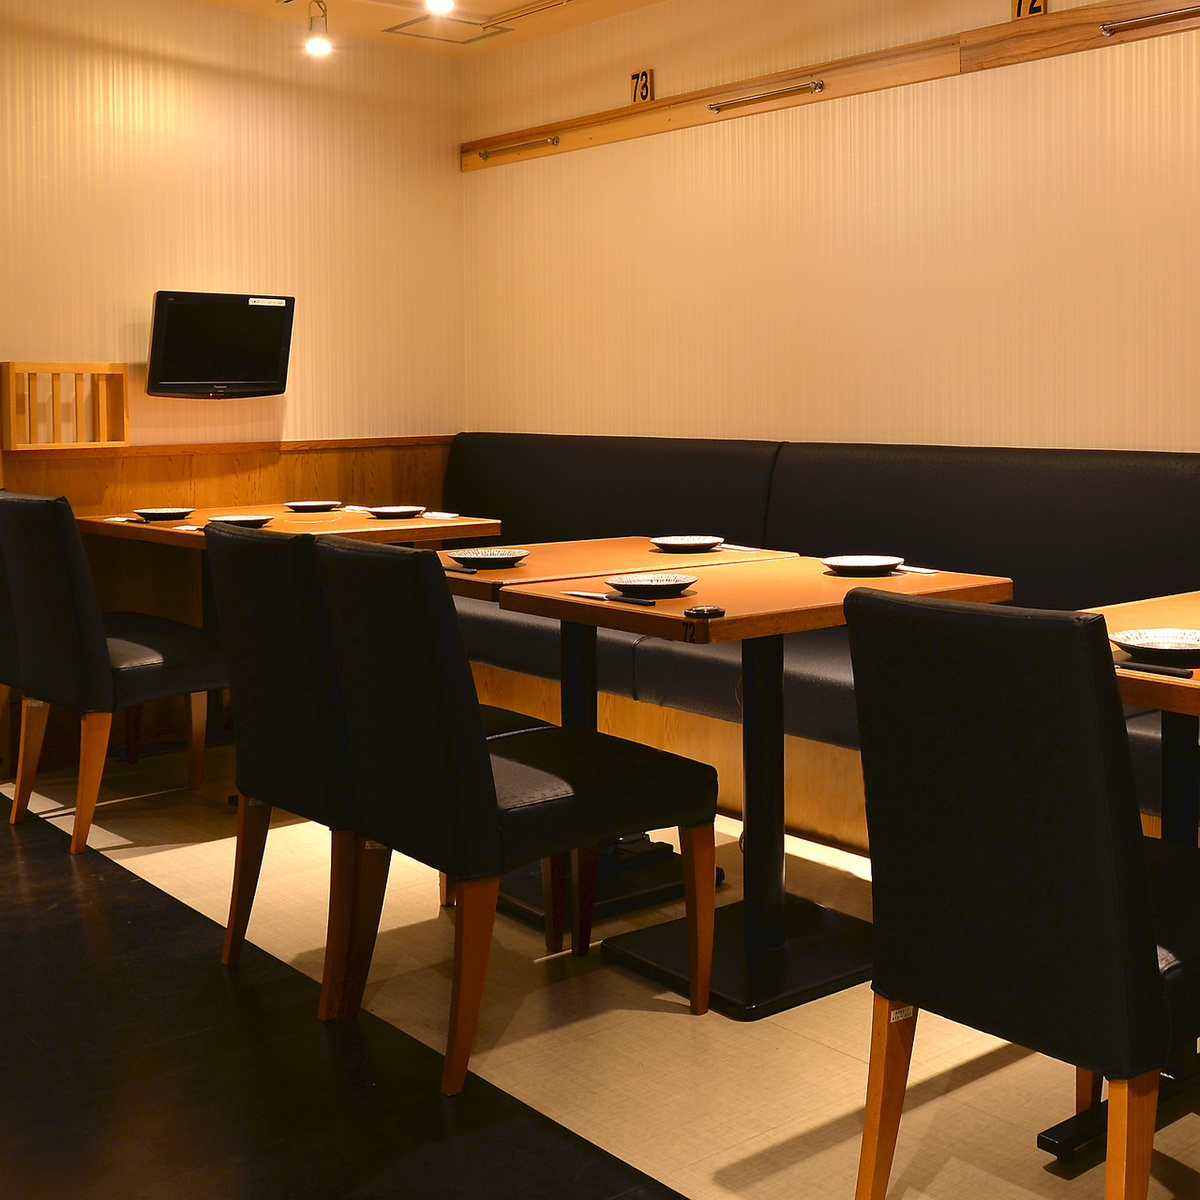 Please use according to the scene ★ In banquet such as birthday party, girls' party, gong consult, drinking party etc. ◎ We also have a course with drink unlimited for various banquets ♪ When looking for a pub in Umeda , Japanese Modern Private Room Space, Confection - YUI - To ☆ 彡 ☆ 彡 【Umeda Izakaya Recommended Girls' Association Private Room Drink All-you-can-eat All-you-can-eat night view】